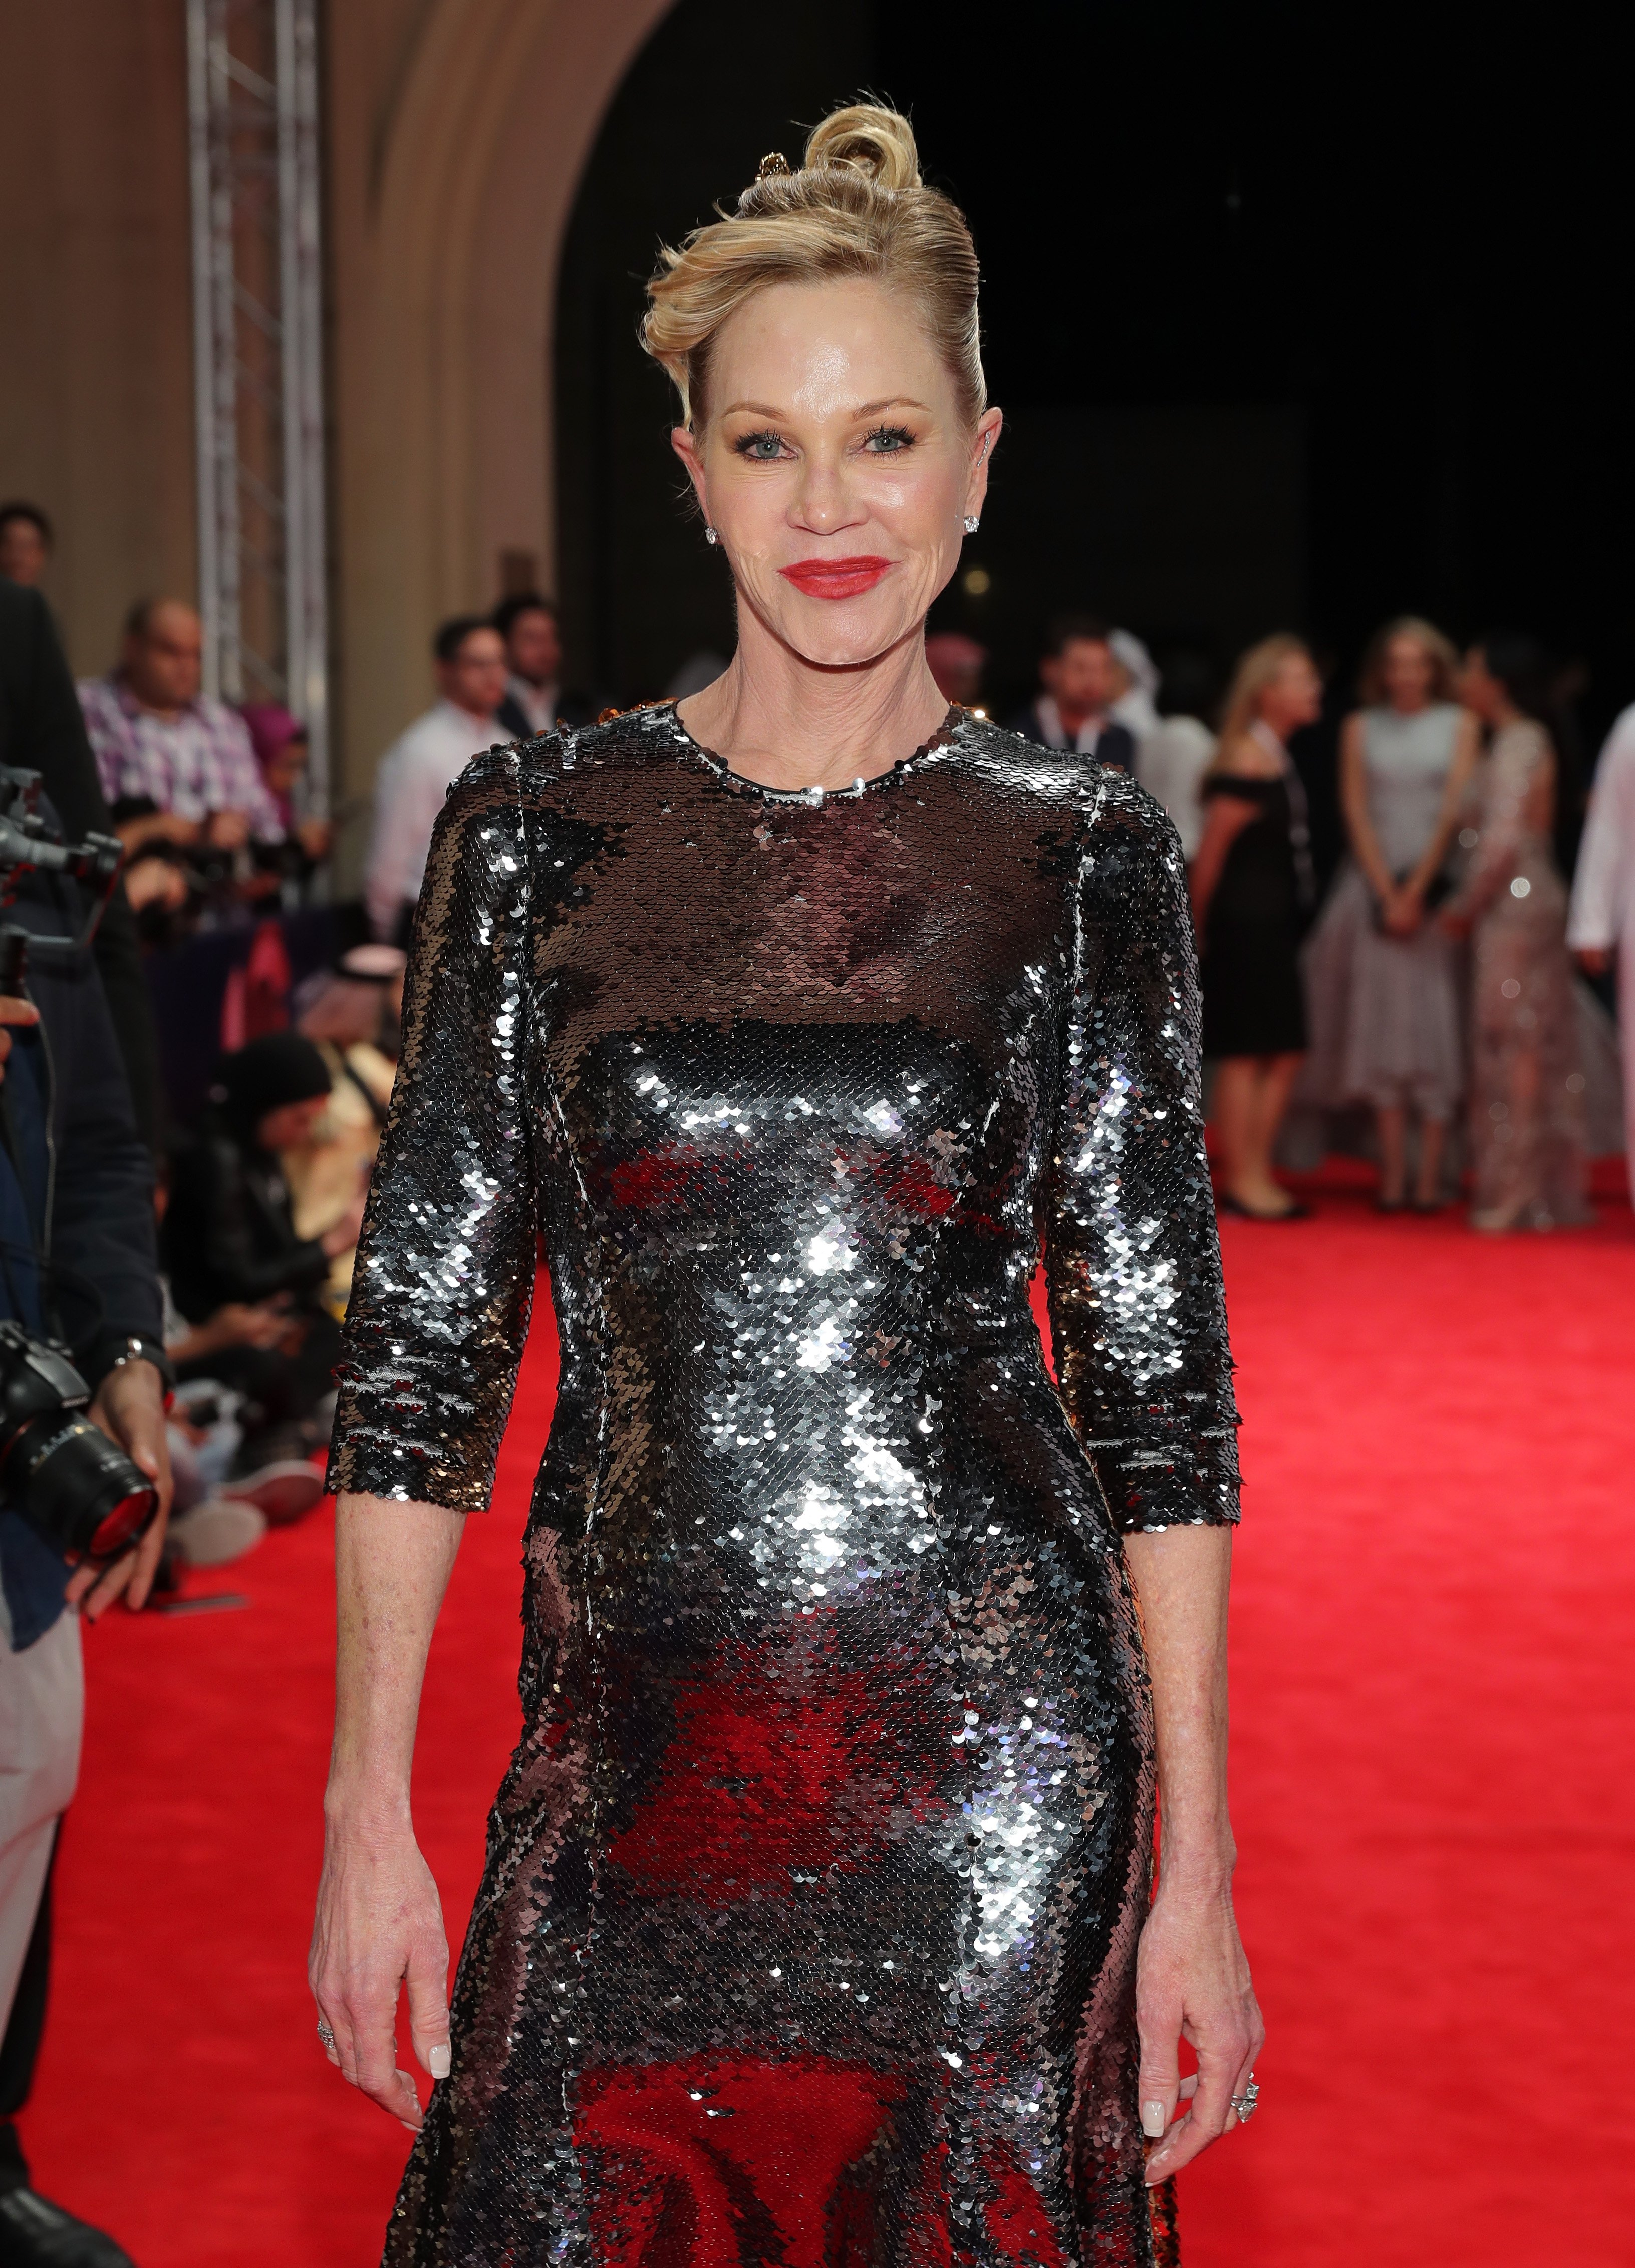 Melanie Griffith attends the Dubai International Film Festival in the United Arab Emirates on December 11, 2016   Photo: Getty Images